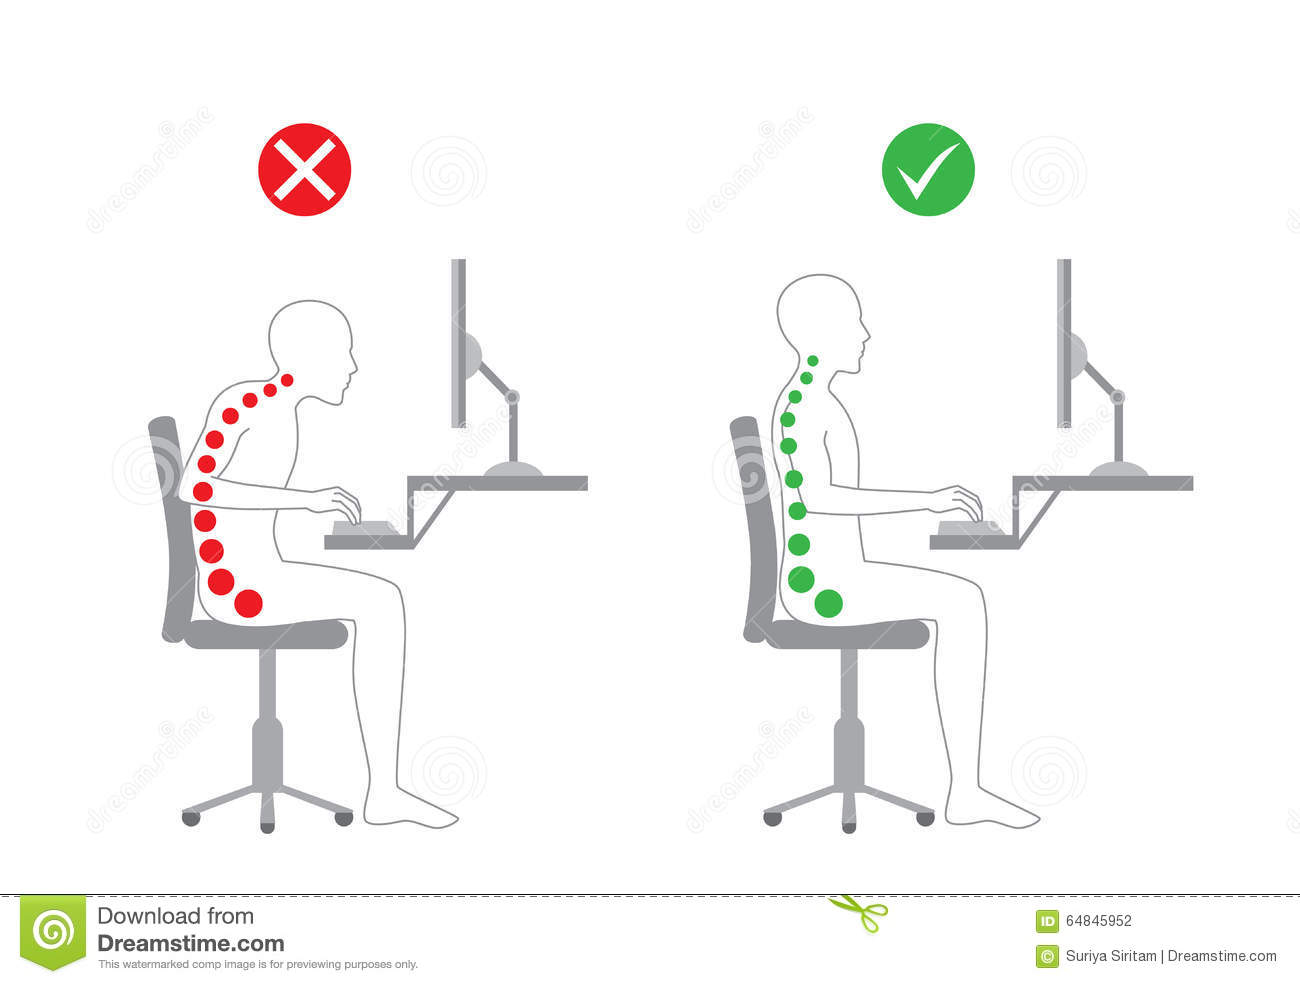 posture alignment chair covers and bows bridgend correct in sitting working stock vector illustration of body with computer